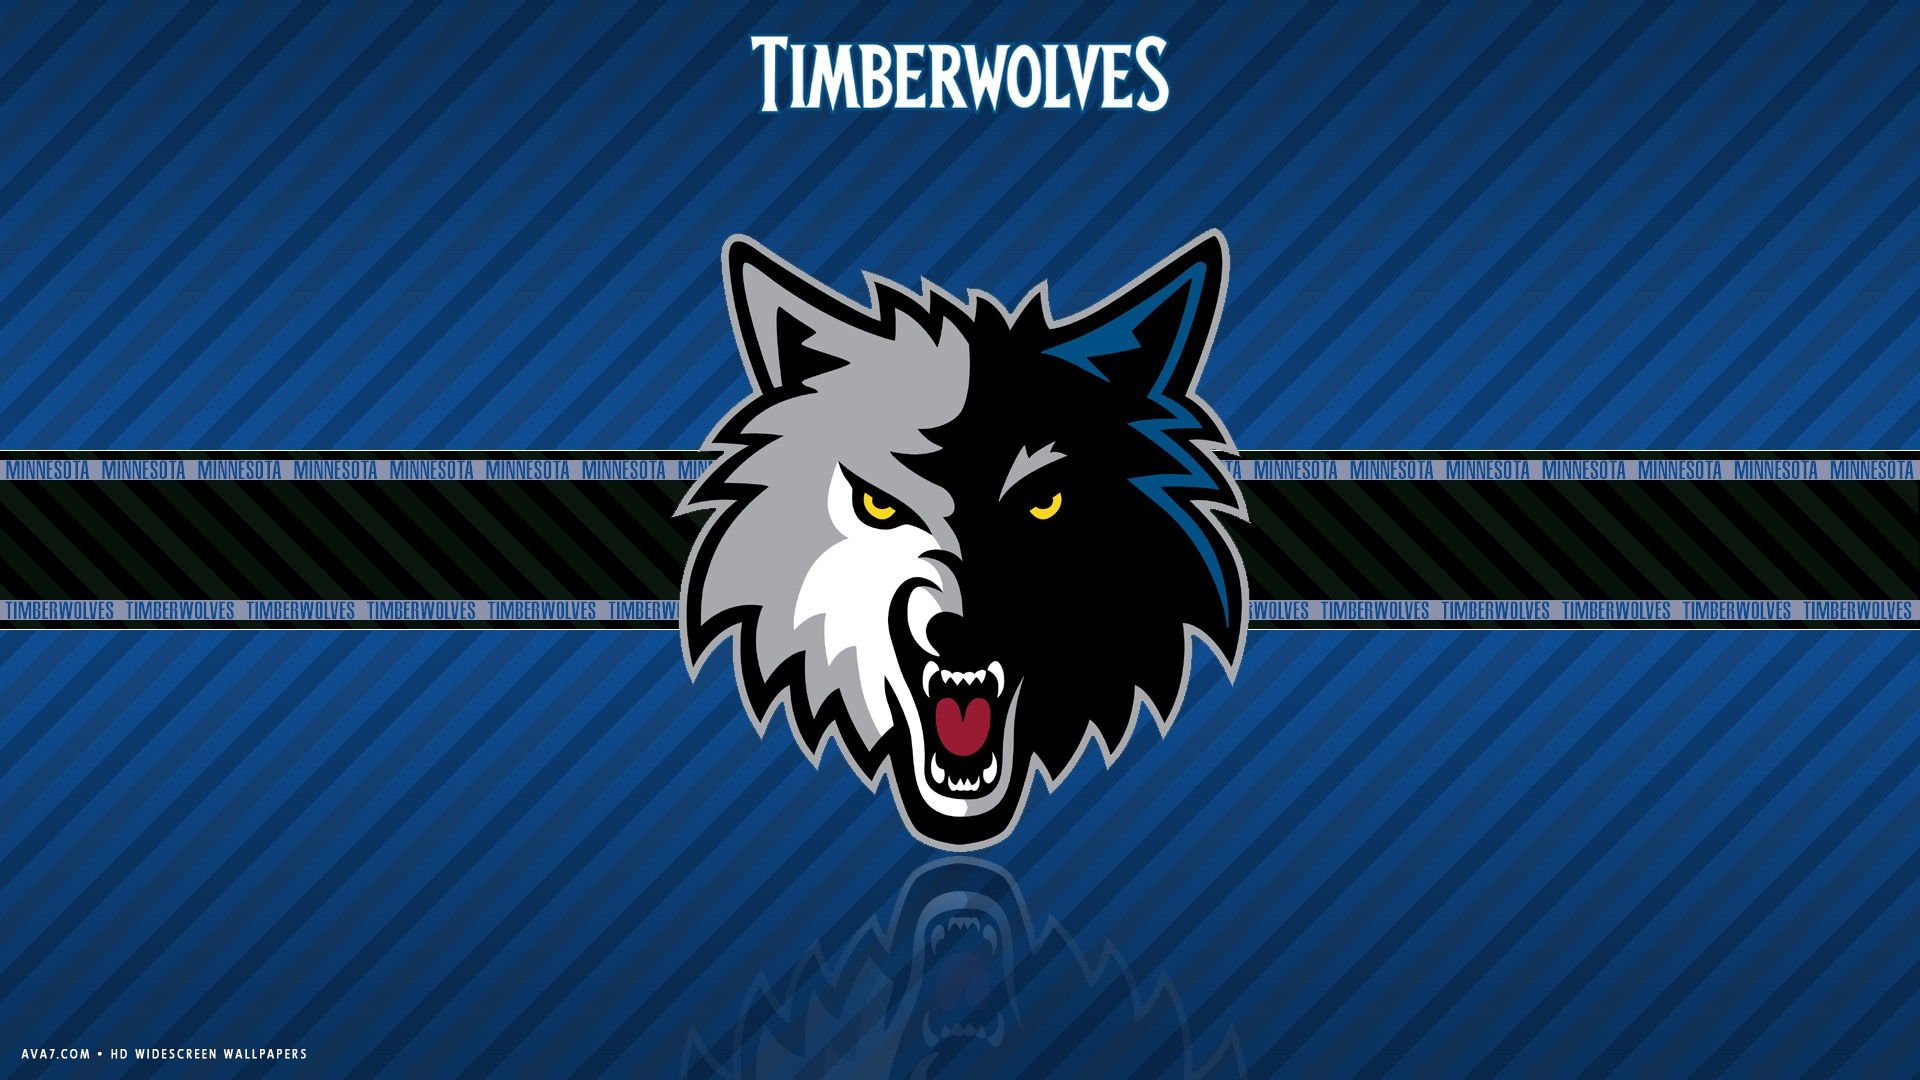 MINNESOTA TIMBERWOLVES nba basketball 13 wallpaper 1920x1080 1920x1080